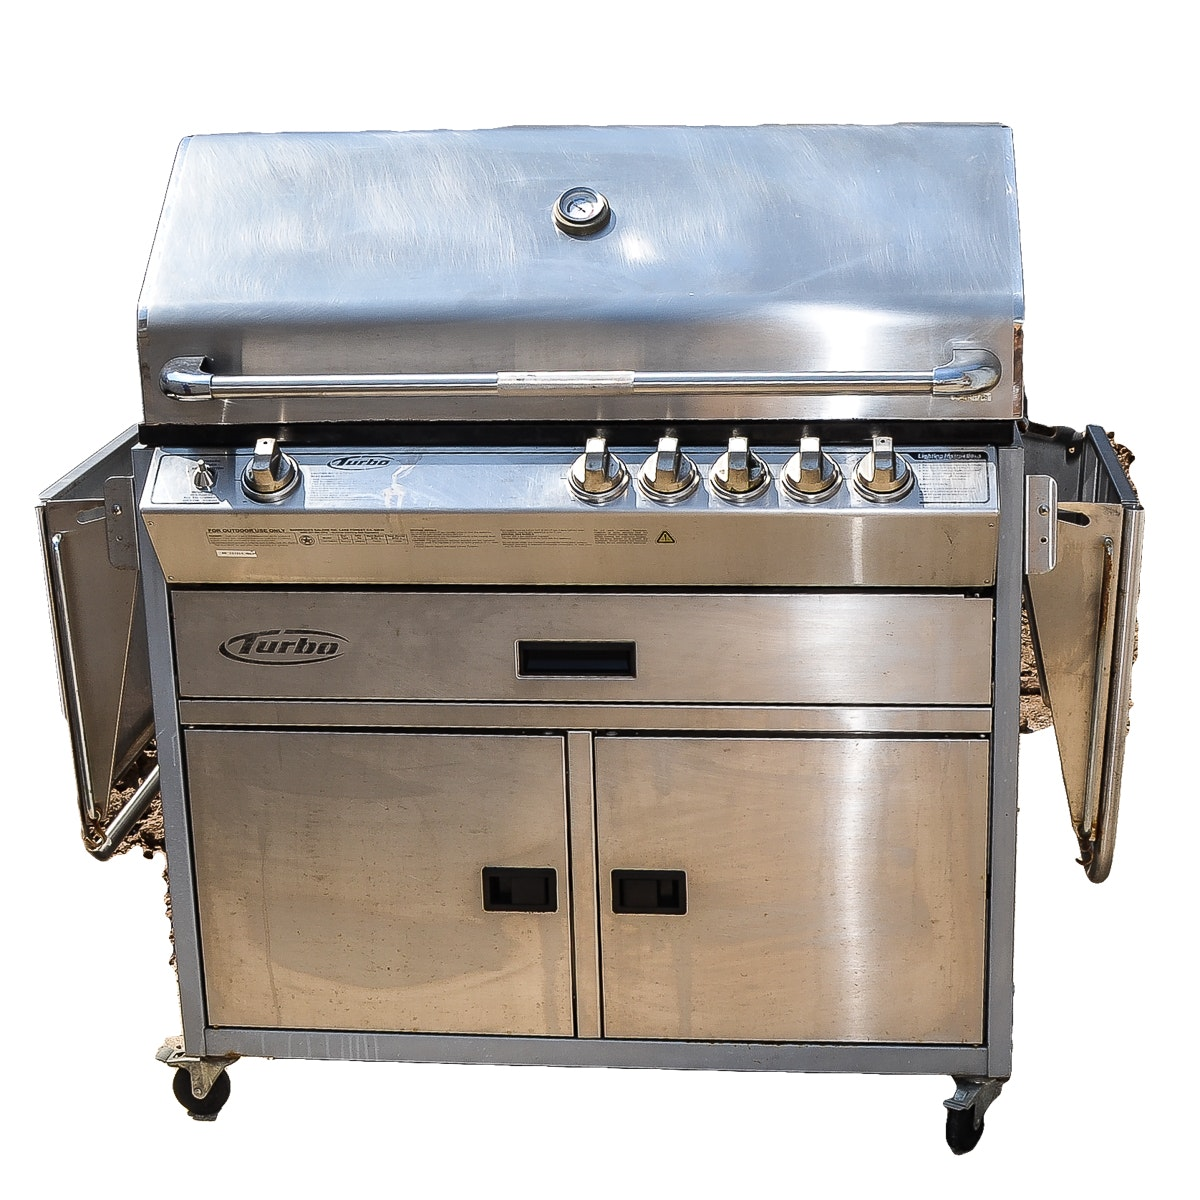 Turbo Natural Gas Barbecue Grill